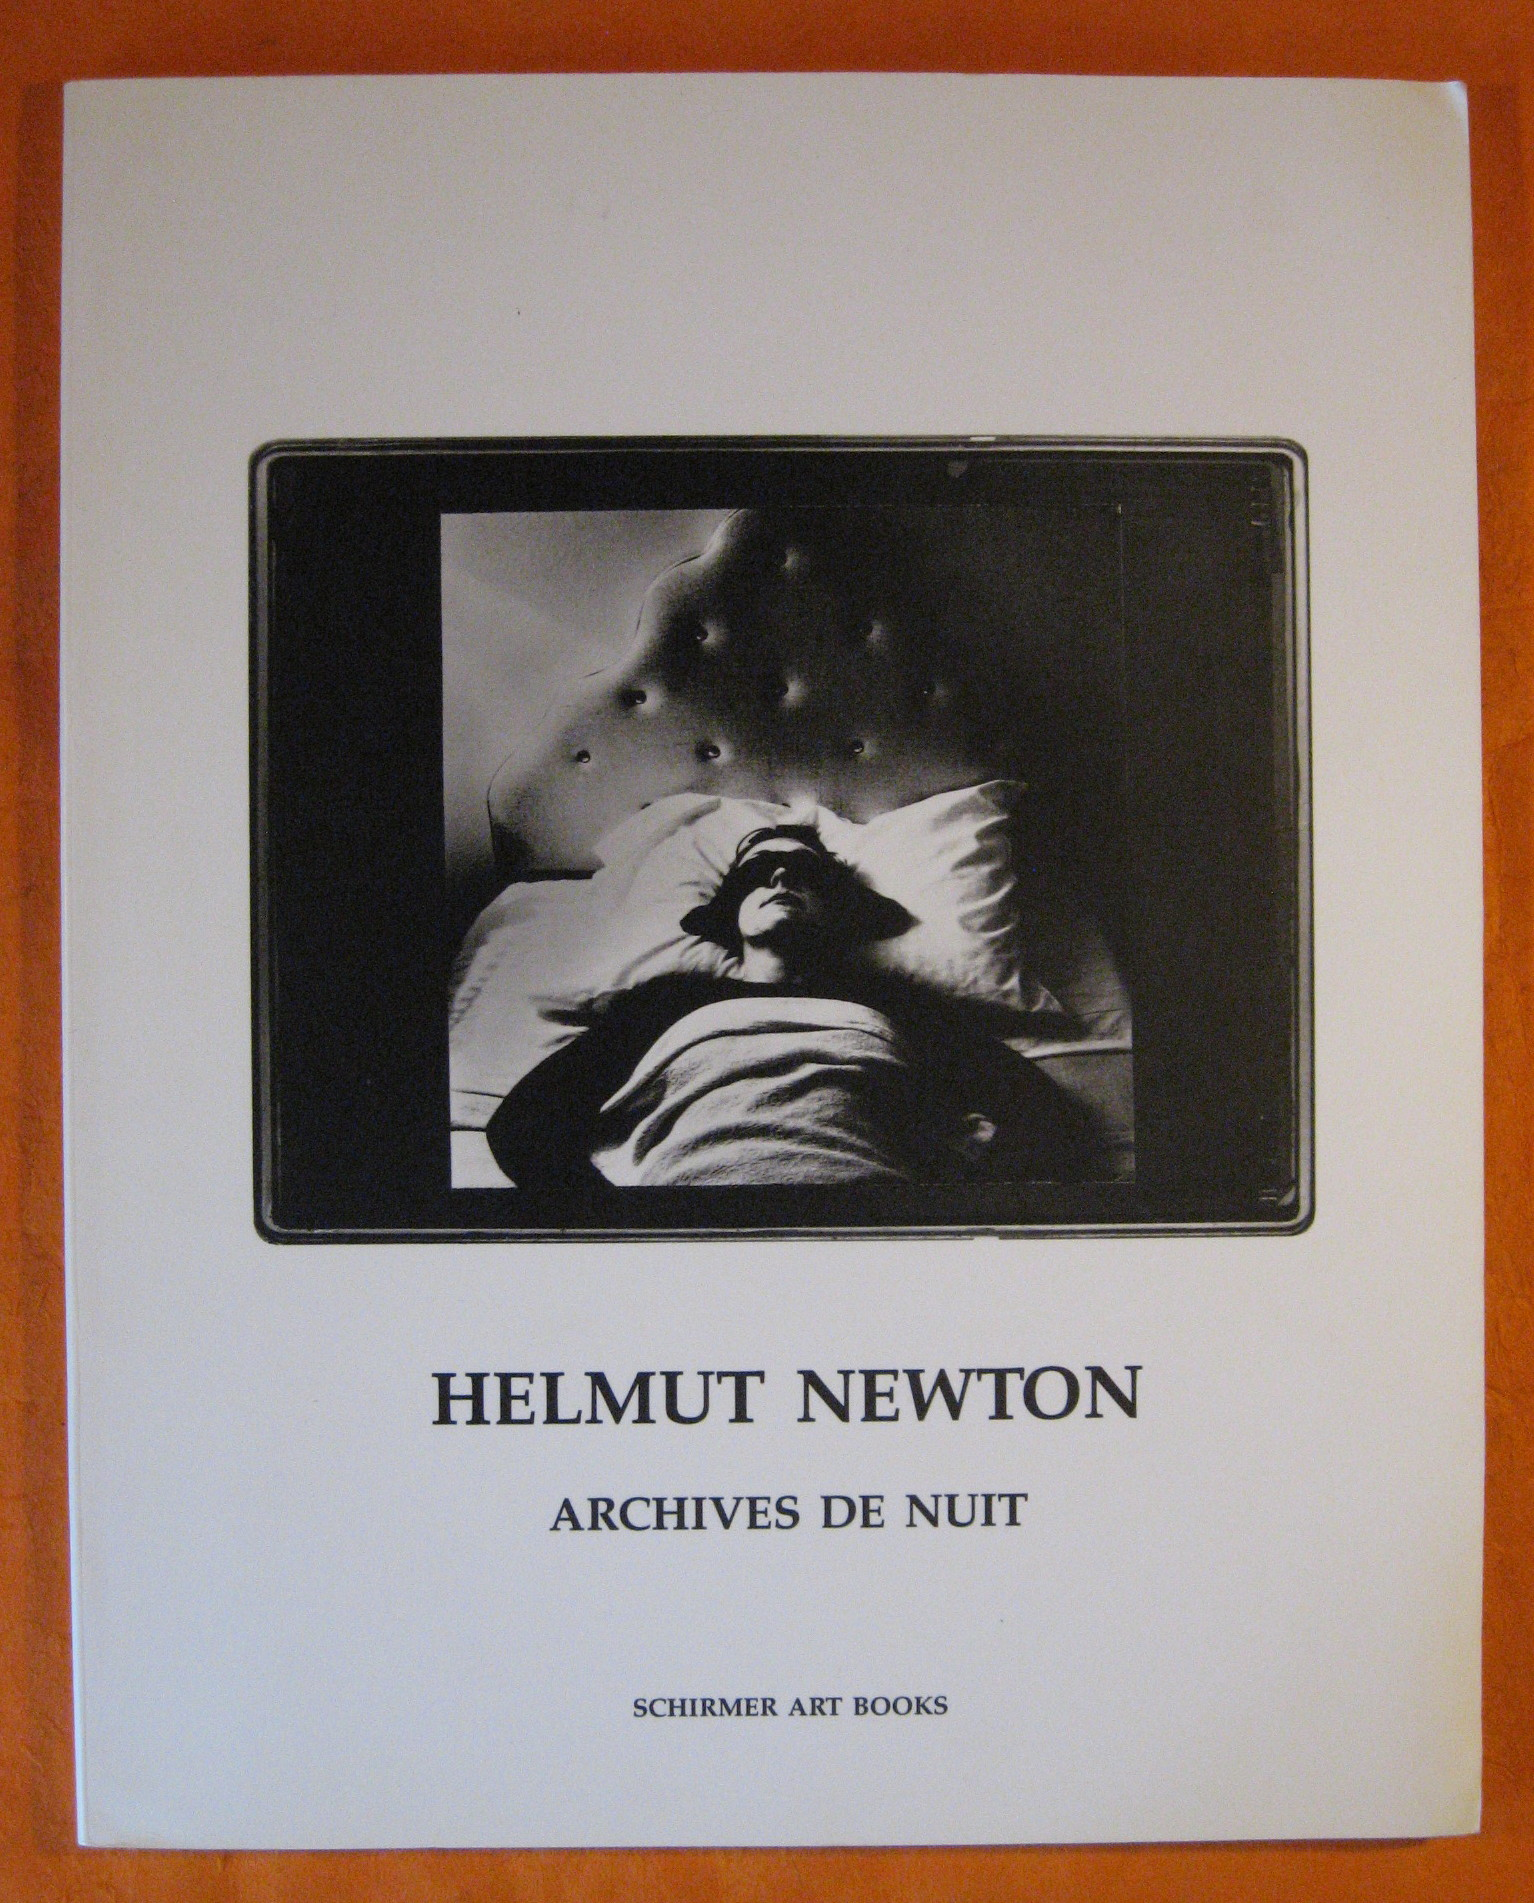 Helmut Newton: Archives de nuit (Schirmer art books on art, photography & erotics)